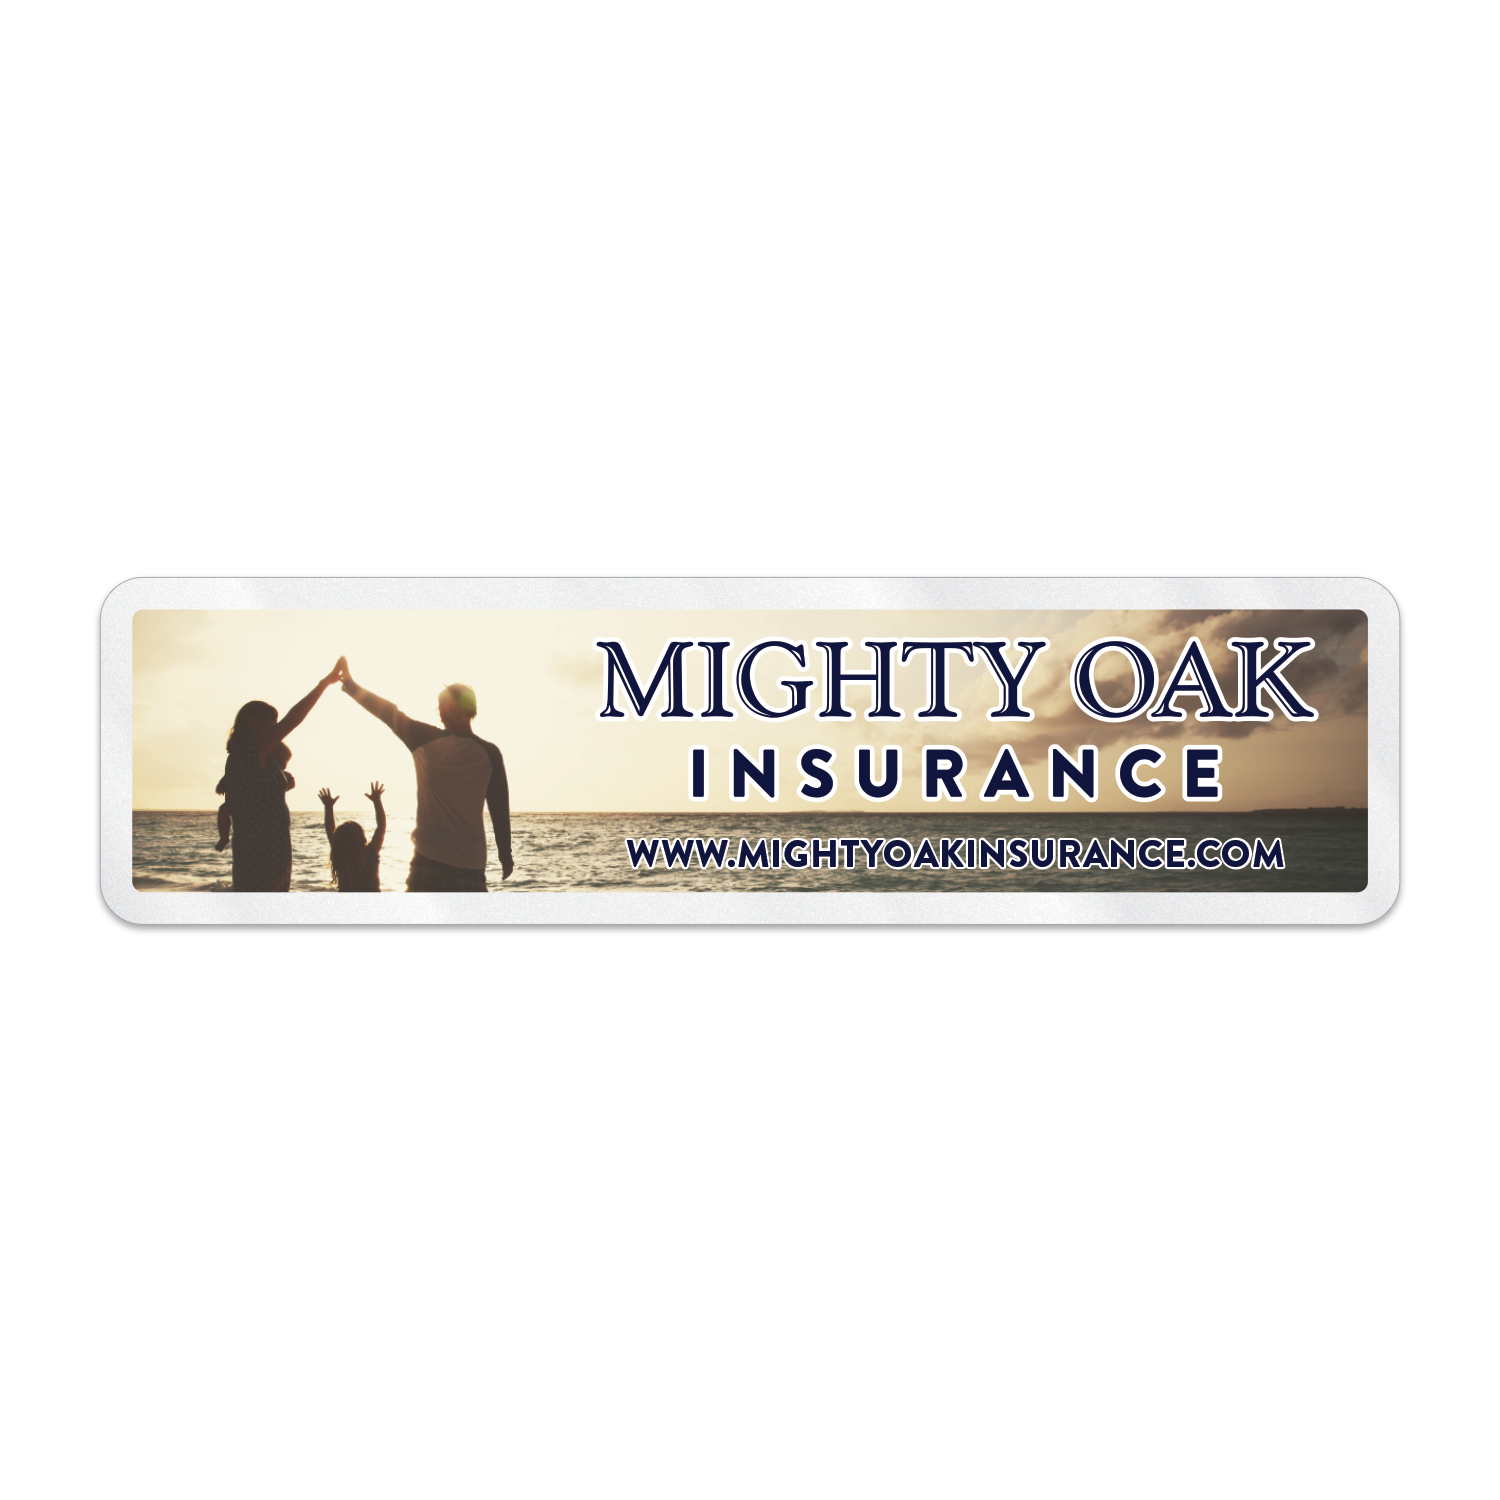 https://www.sswprinting.com/images/products_gallery_images/184408_Mighty-Oak-Insurance_hi-res.png